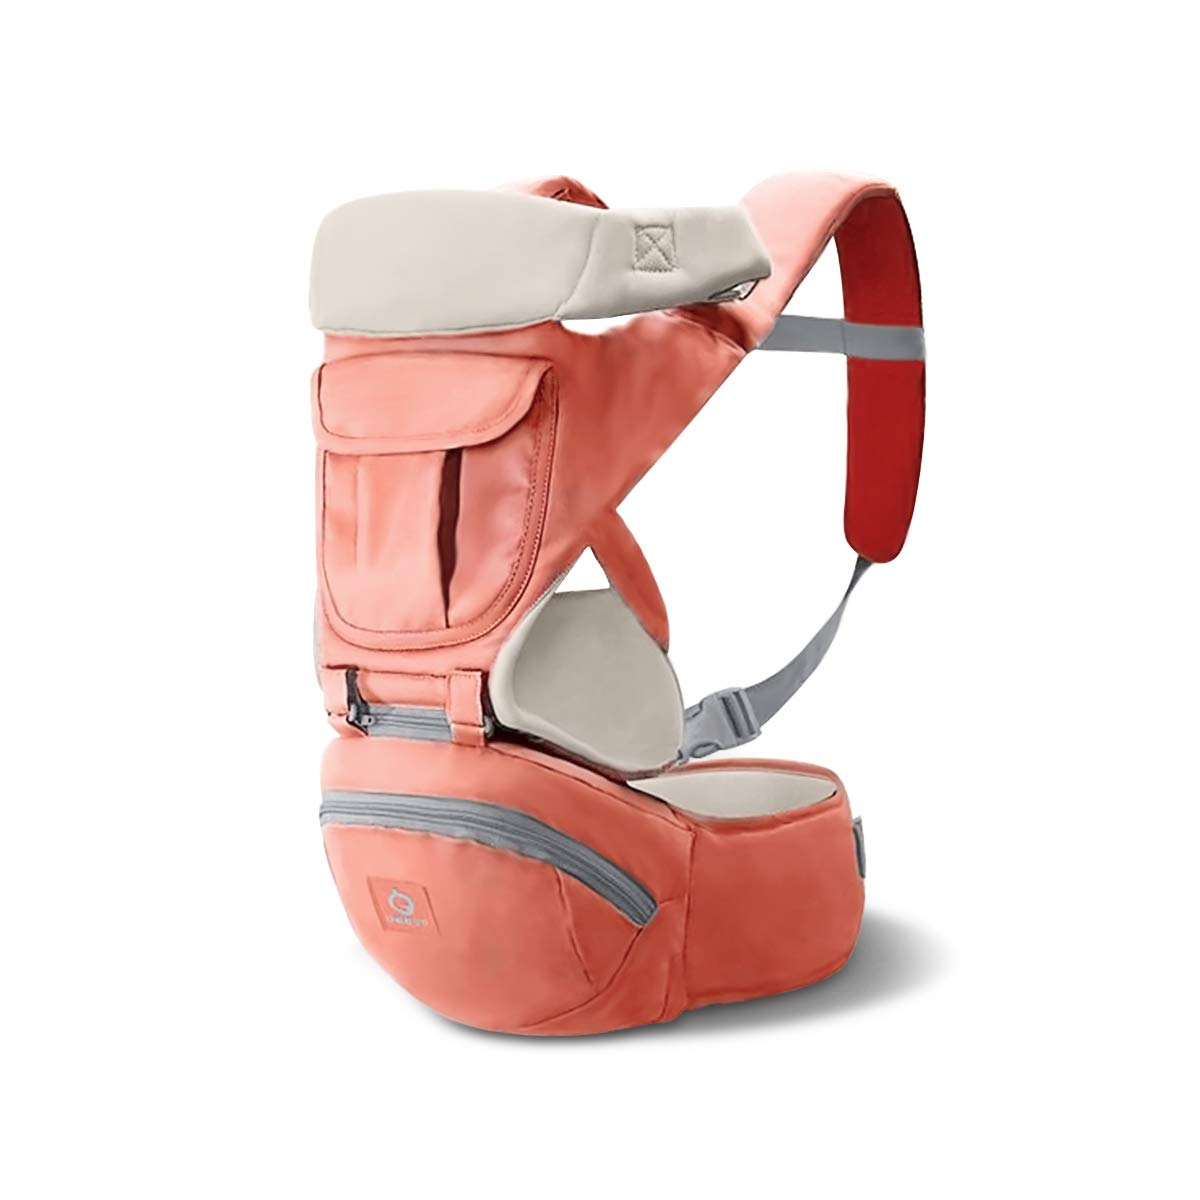 100/% Guarantee and Free DELIVERY,Ideal Gift Gray SONARIN 3 in 1 Multifunction Hipseat Baby Carrier,Front Facing Infant Sling,Large Storage,Ergonomic,All Seasons,Adapted to Your Childs Growing